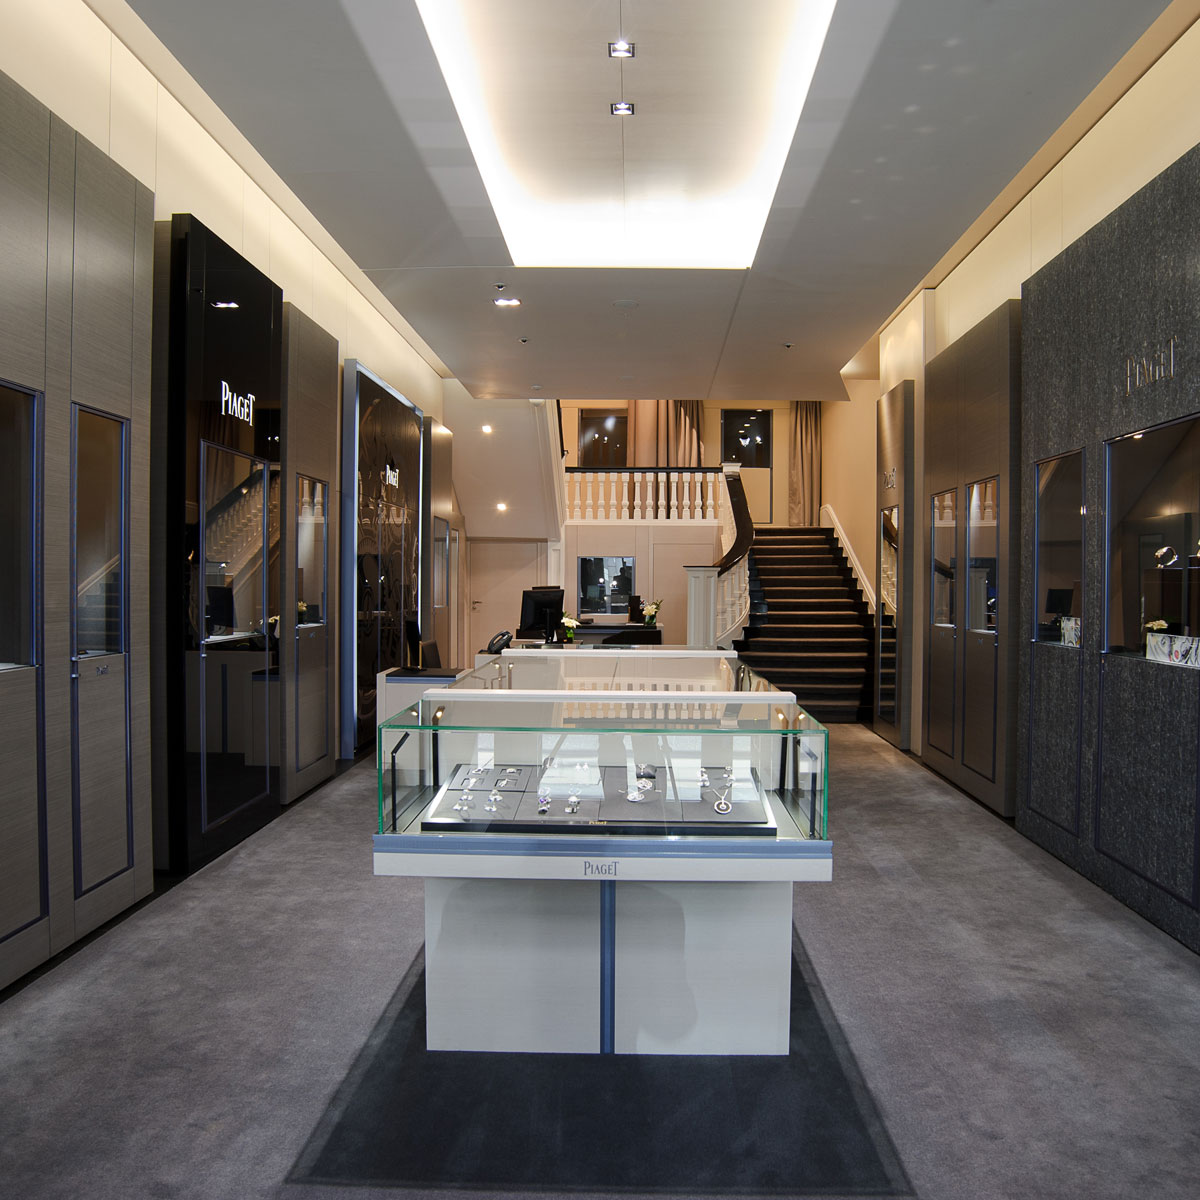 The Watch Quote: Photo - Luxury Watch and Jewellery Brand Piaget opens UK Flagship